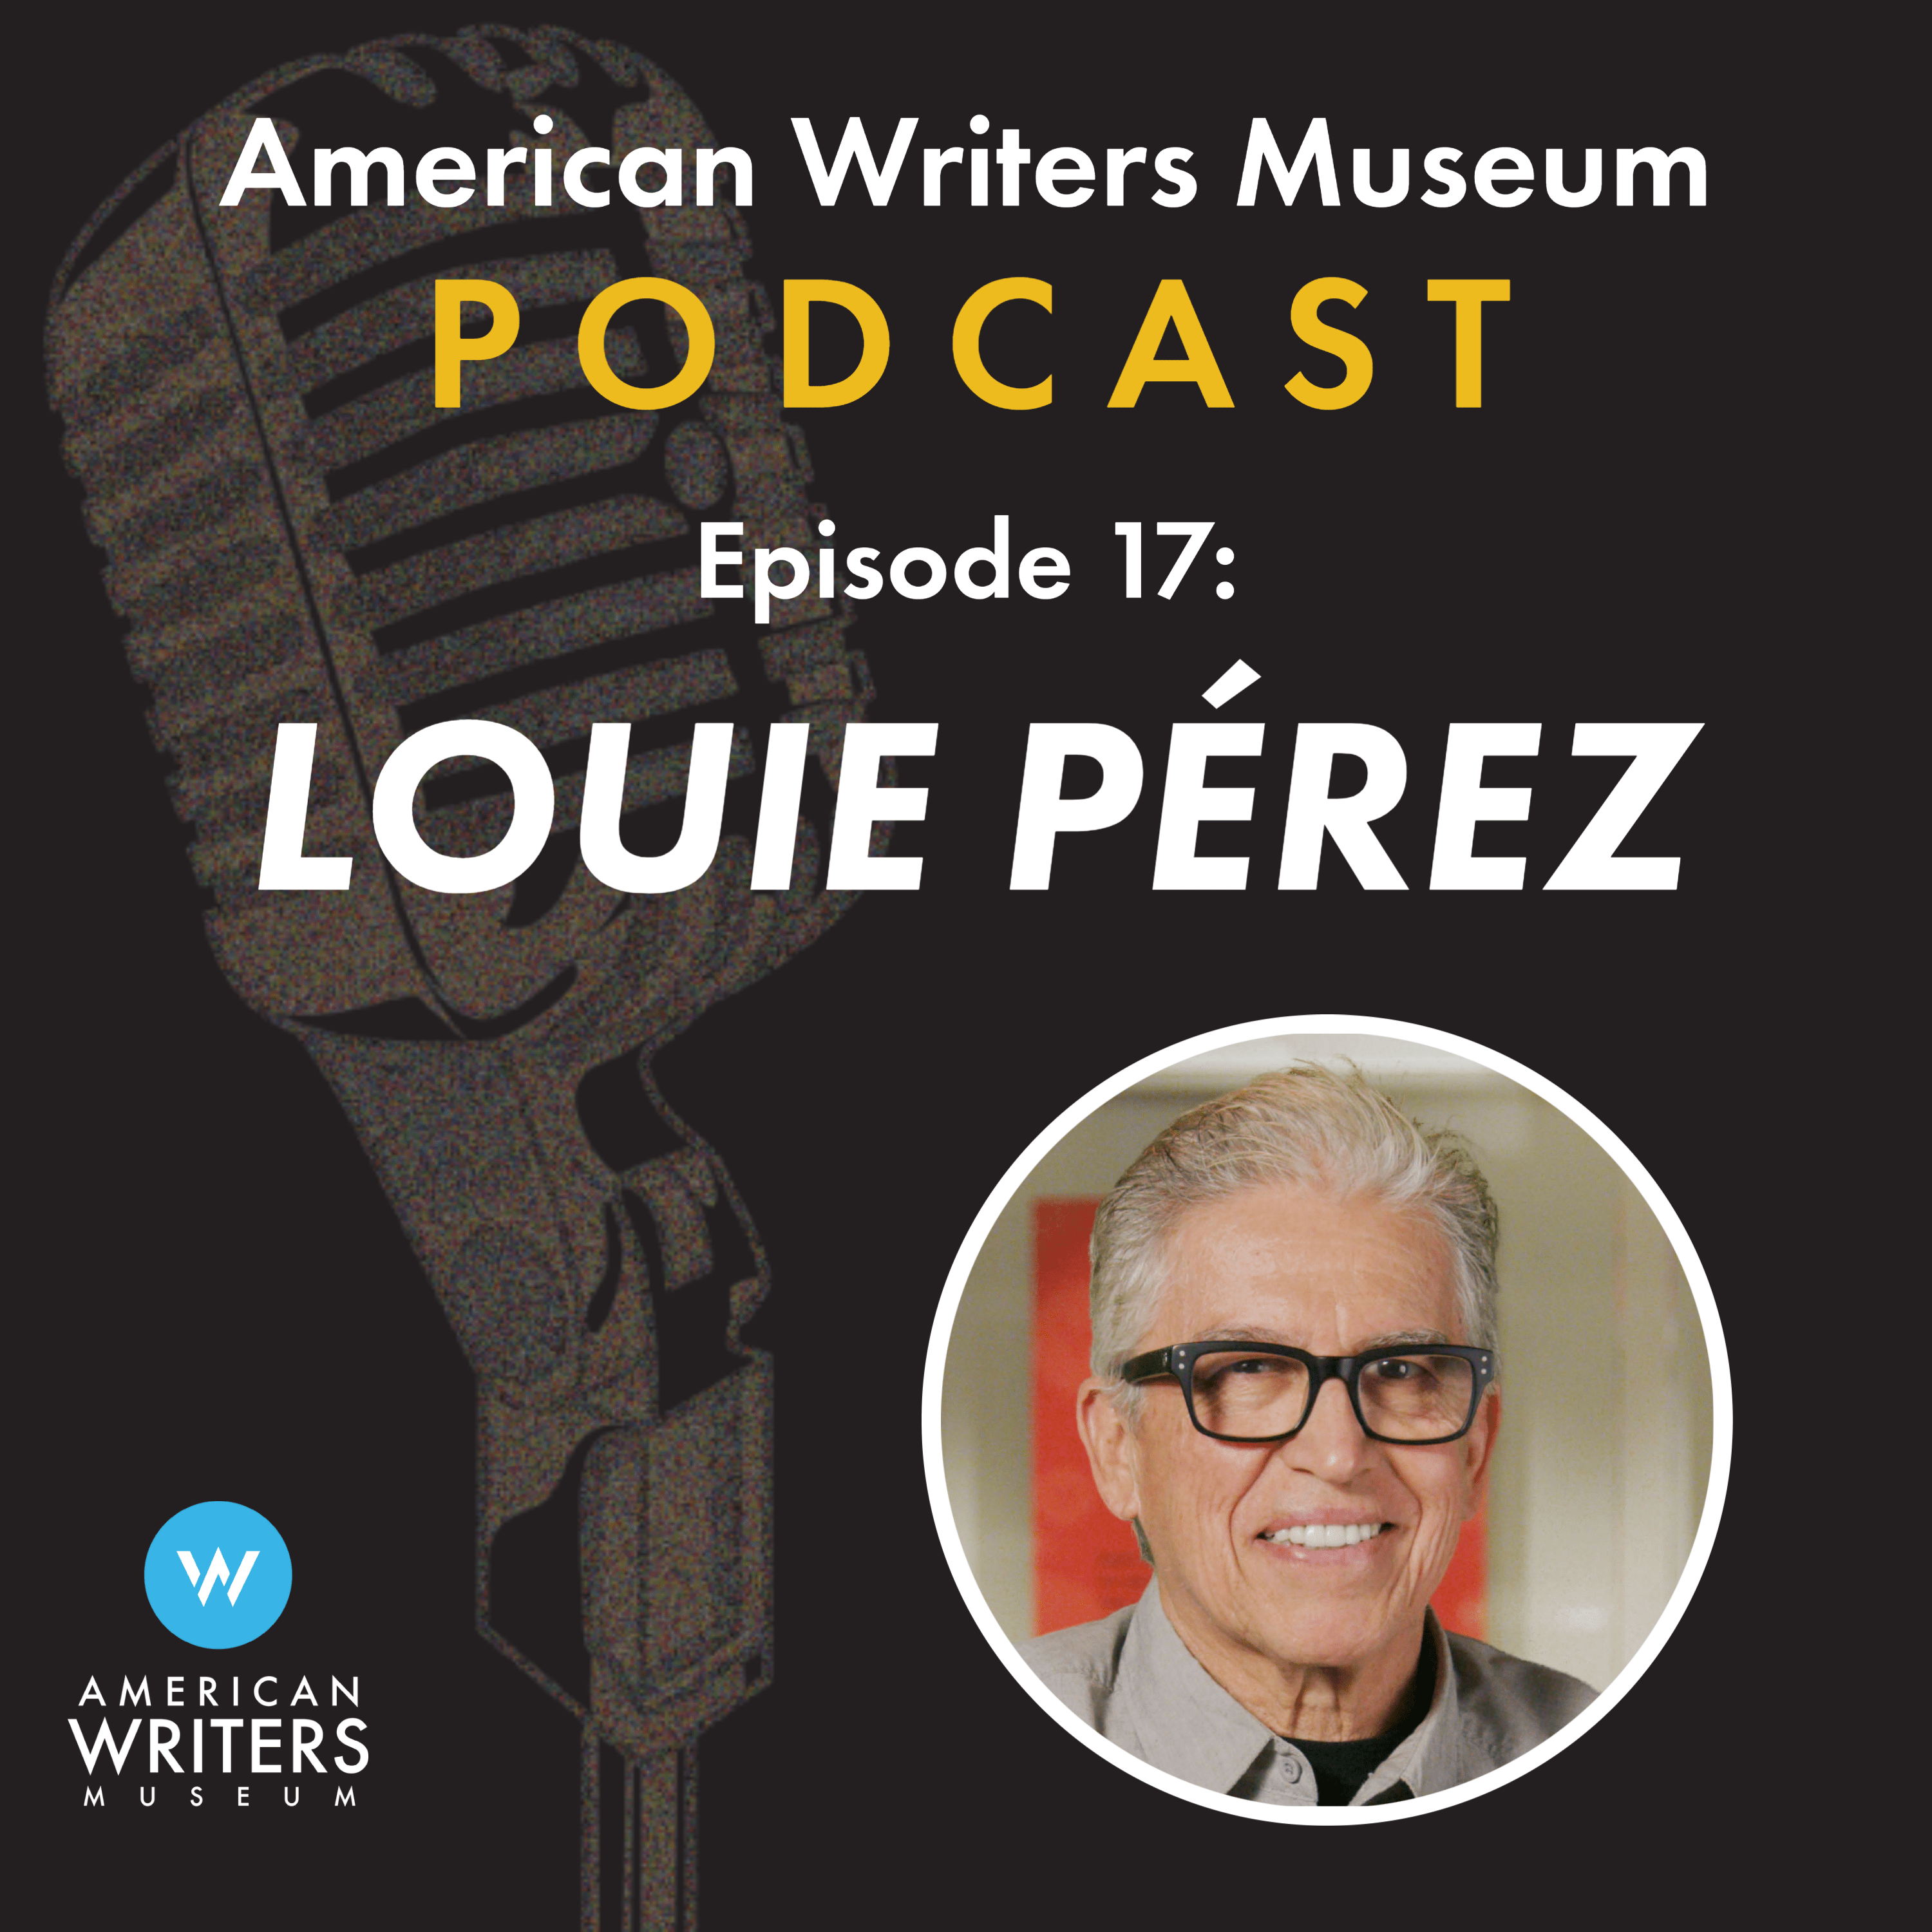 American Writers Museum podcast episode 17 with Louie Perez